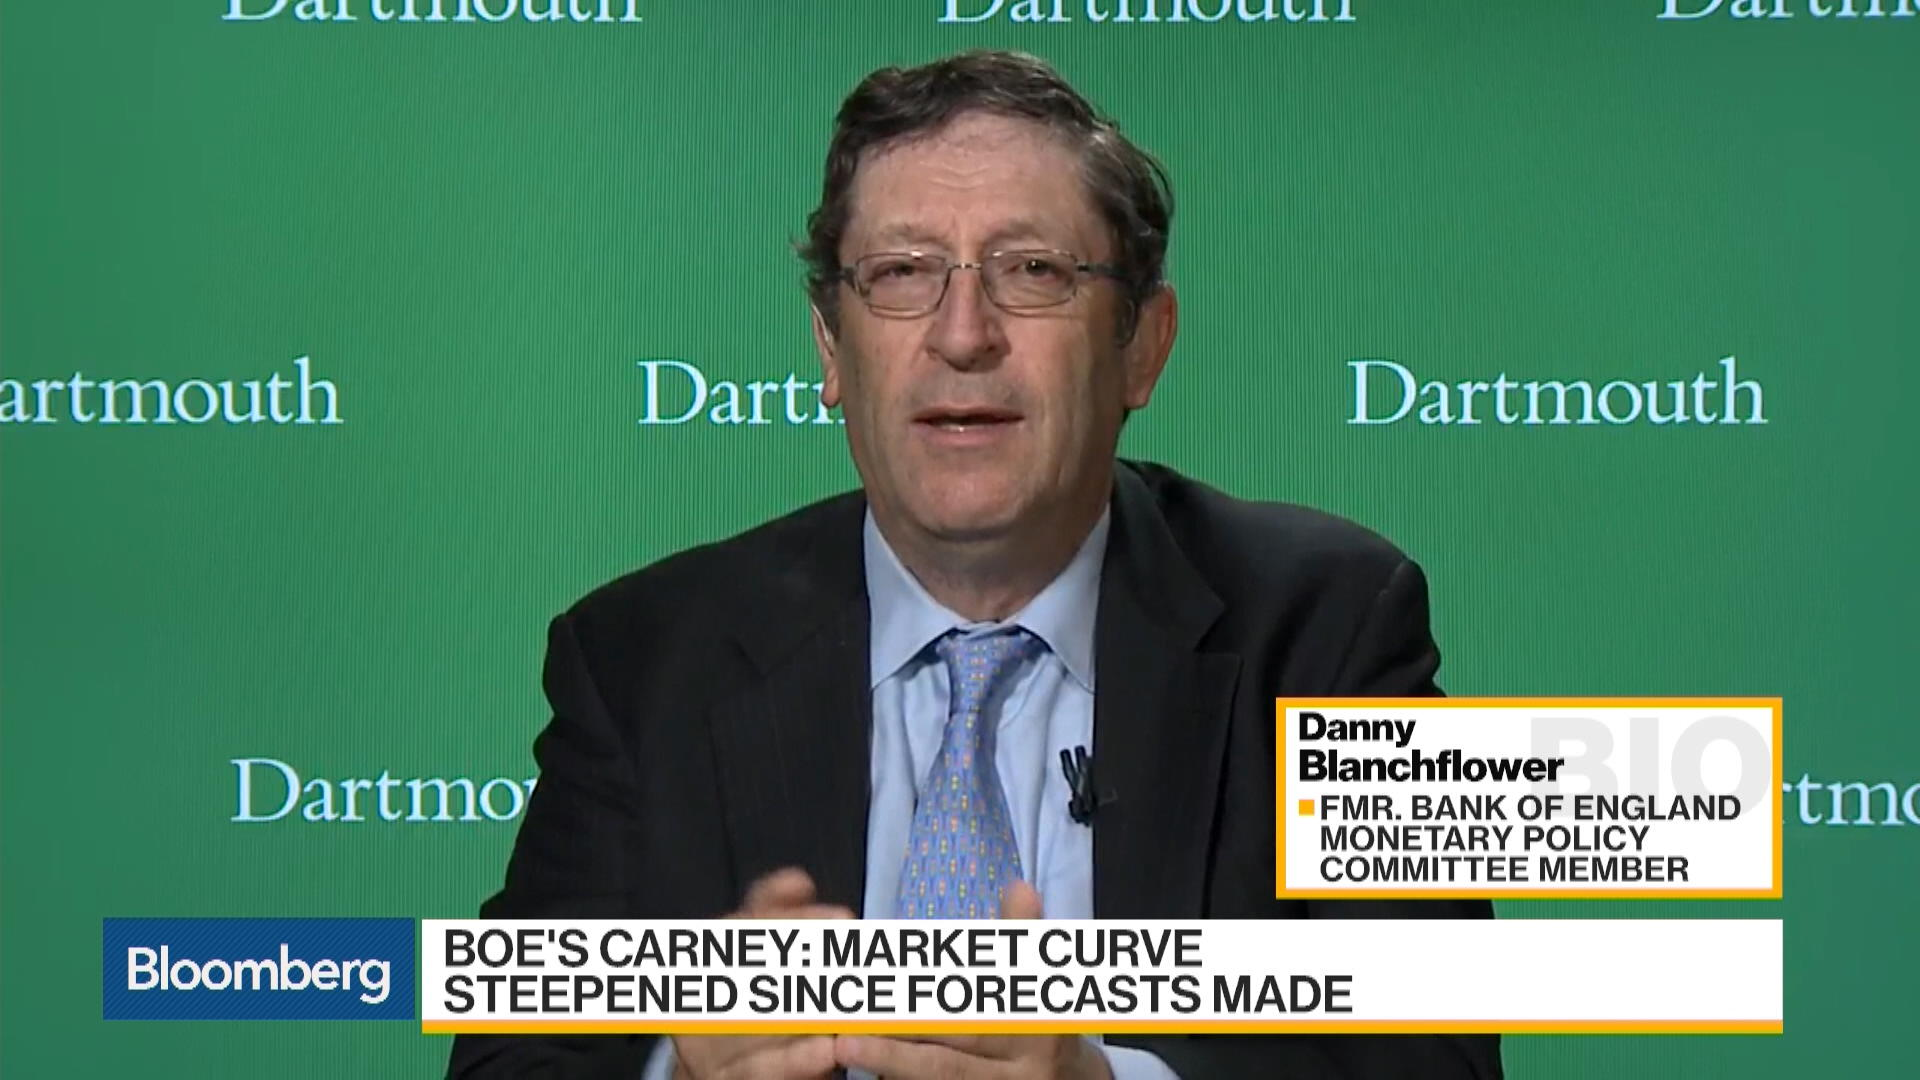 Ex MPC Member Blanchflower Calls Forecast an Illusion – Bloomberg